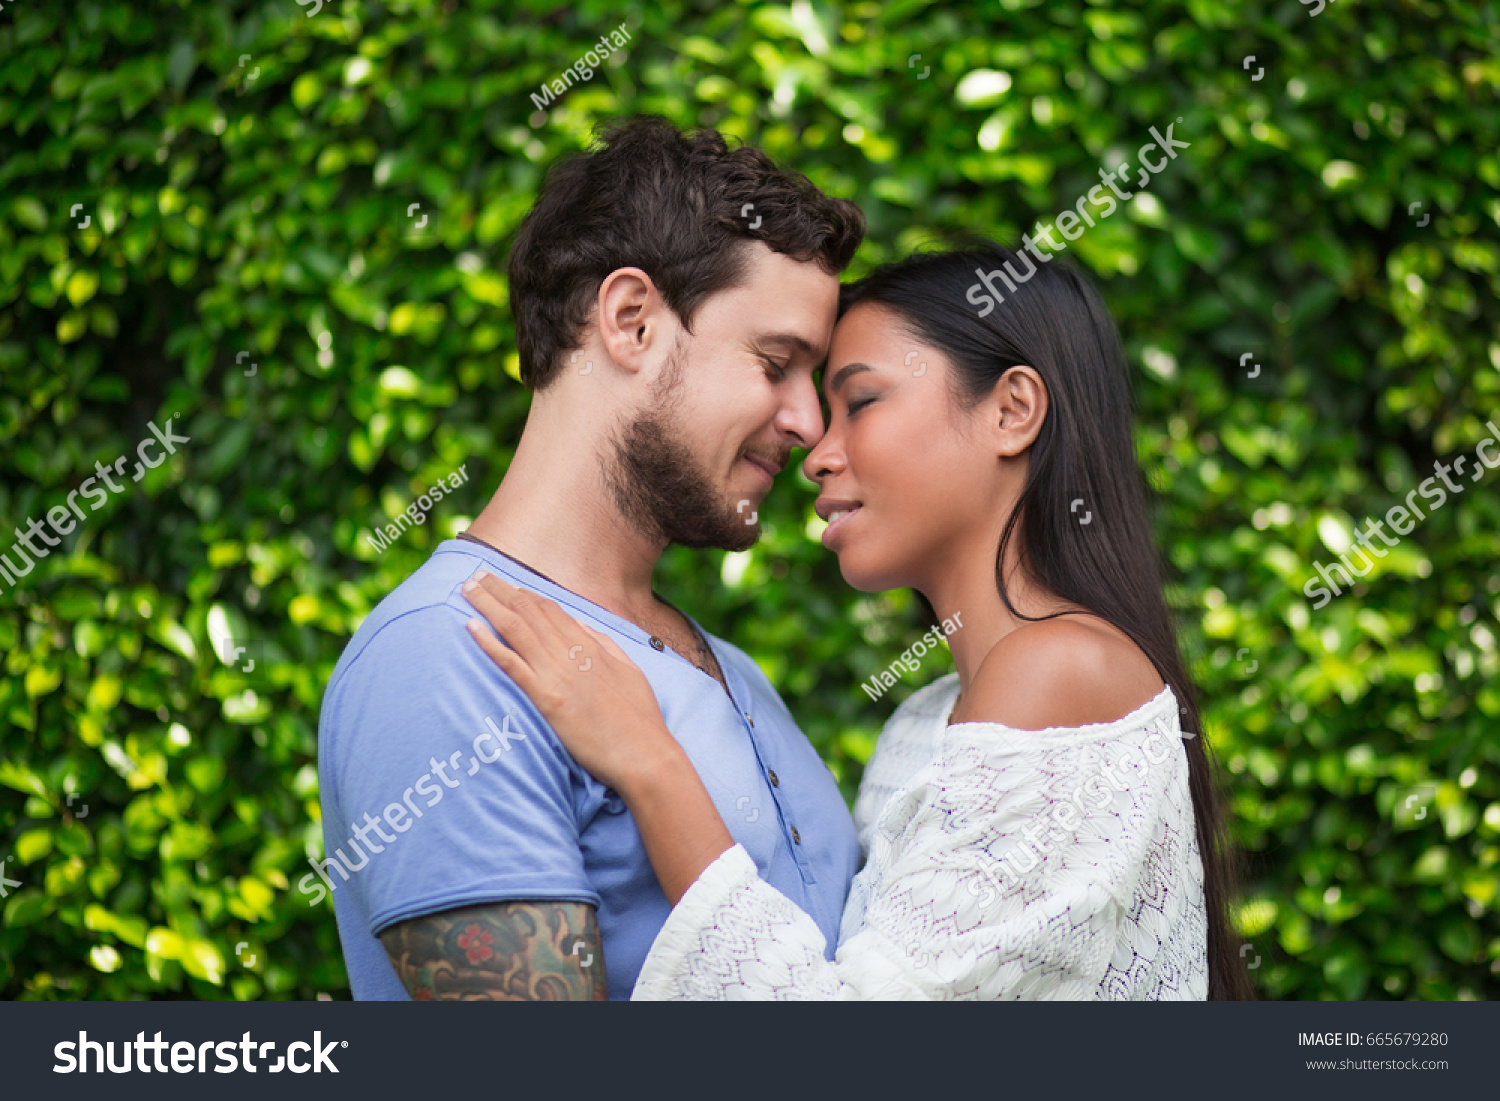 Interracial couple photos